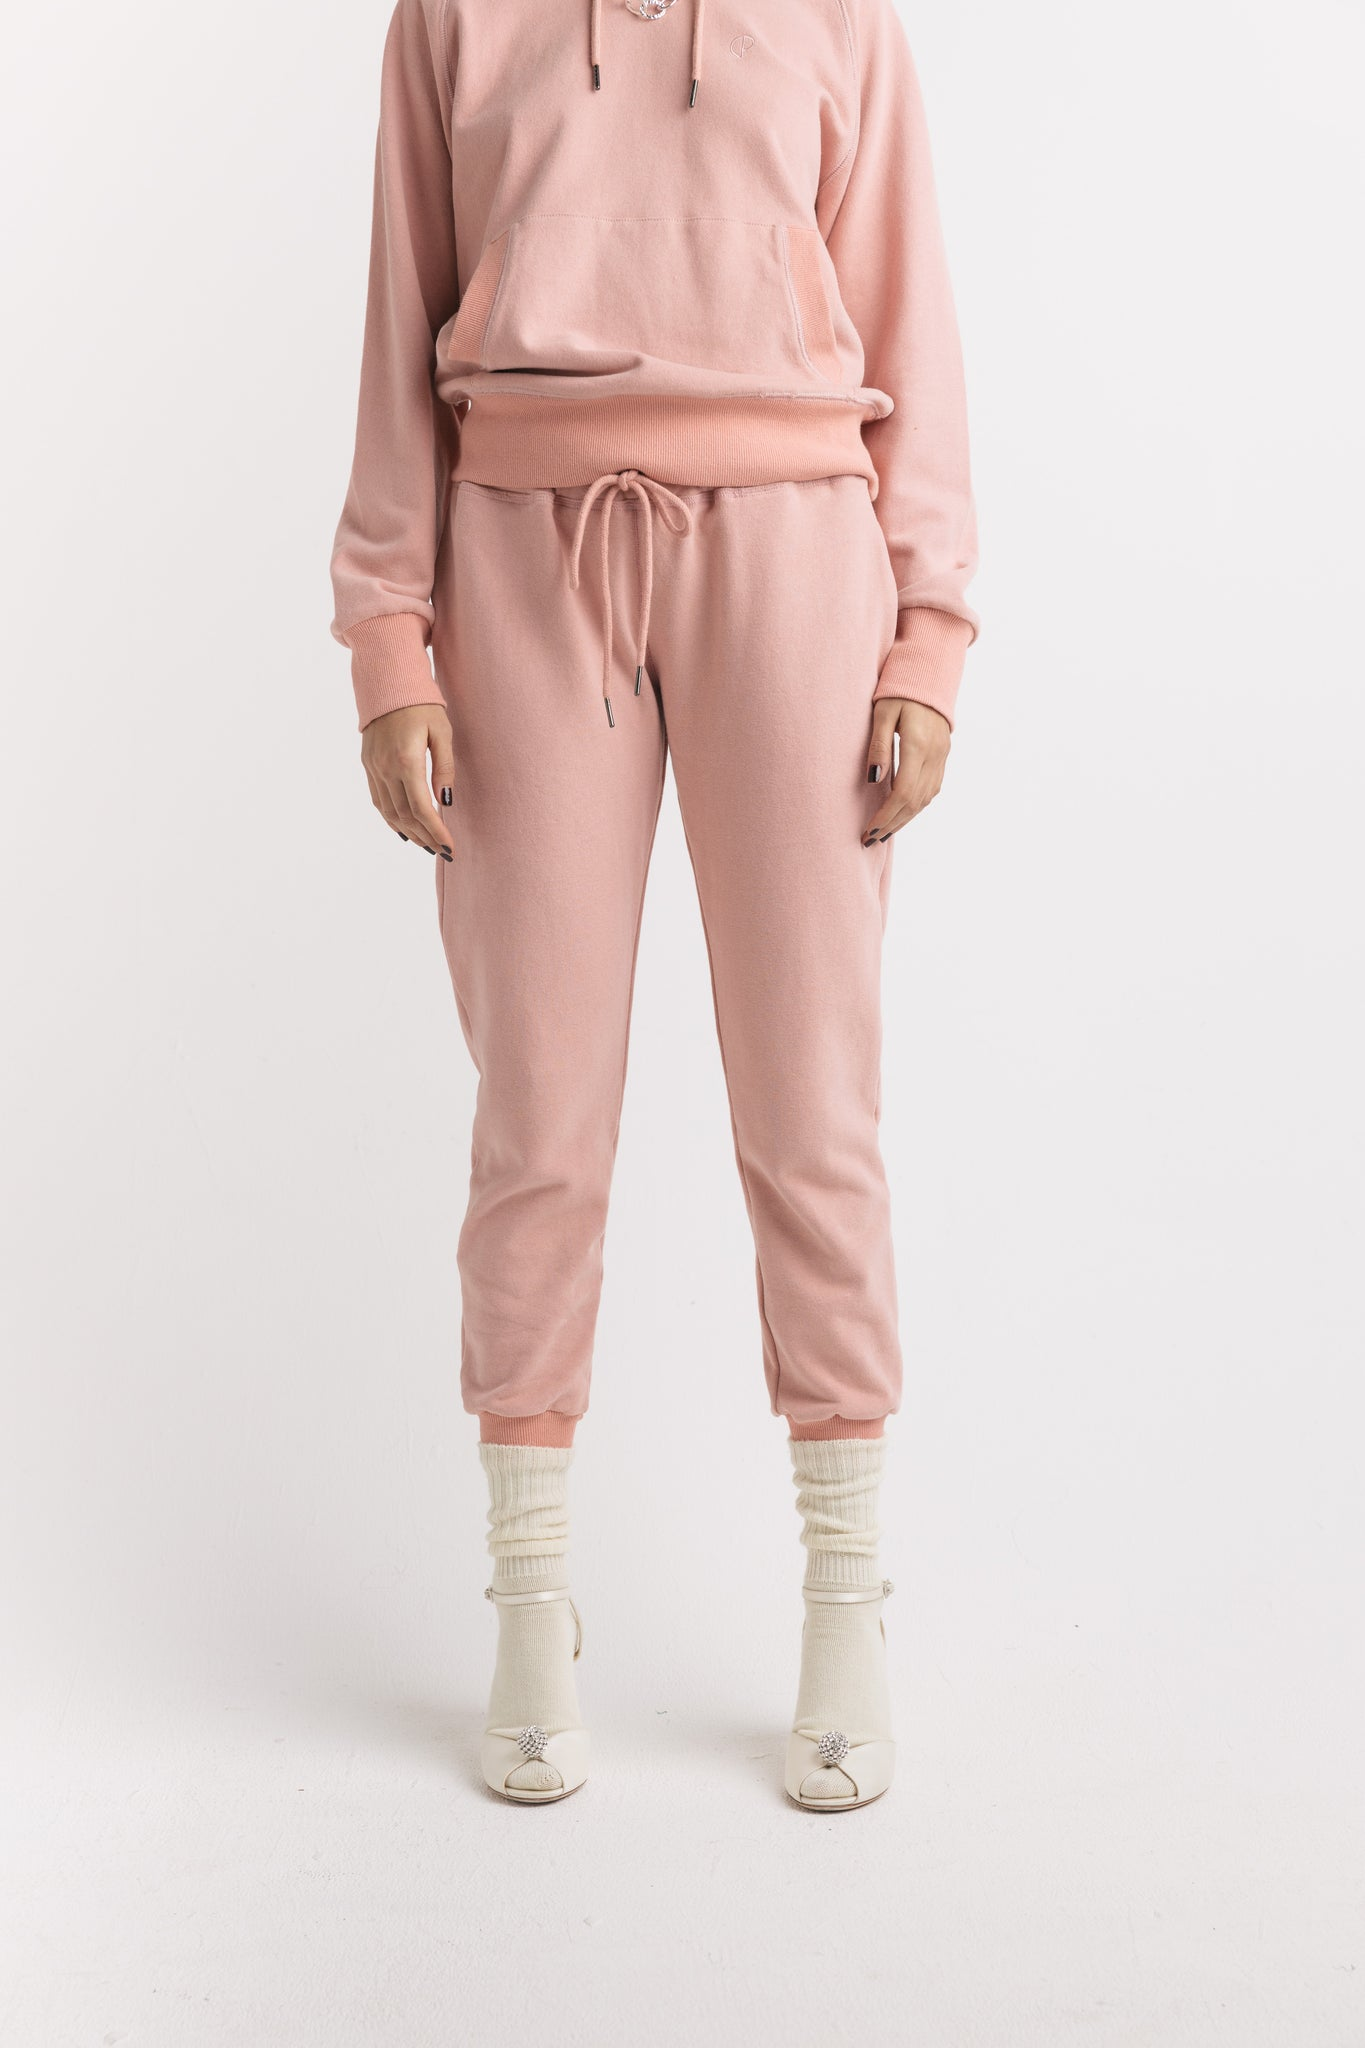 Rose Quartz sweatpants